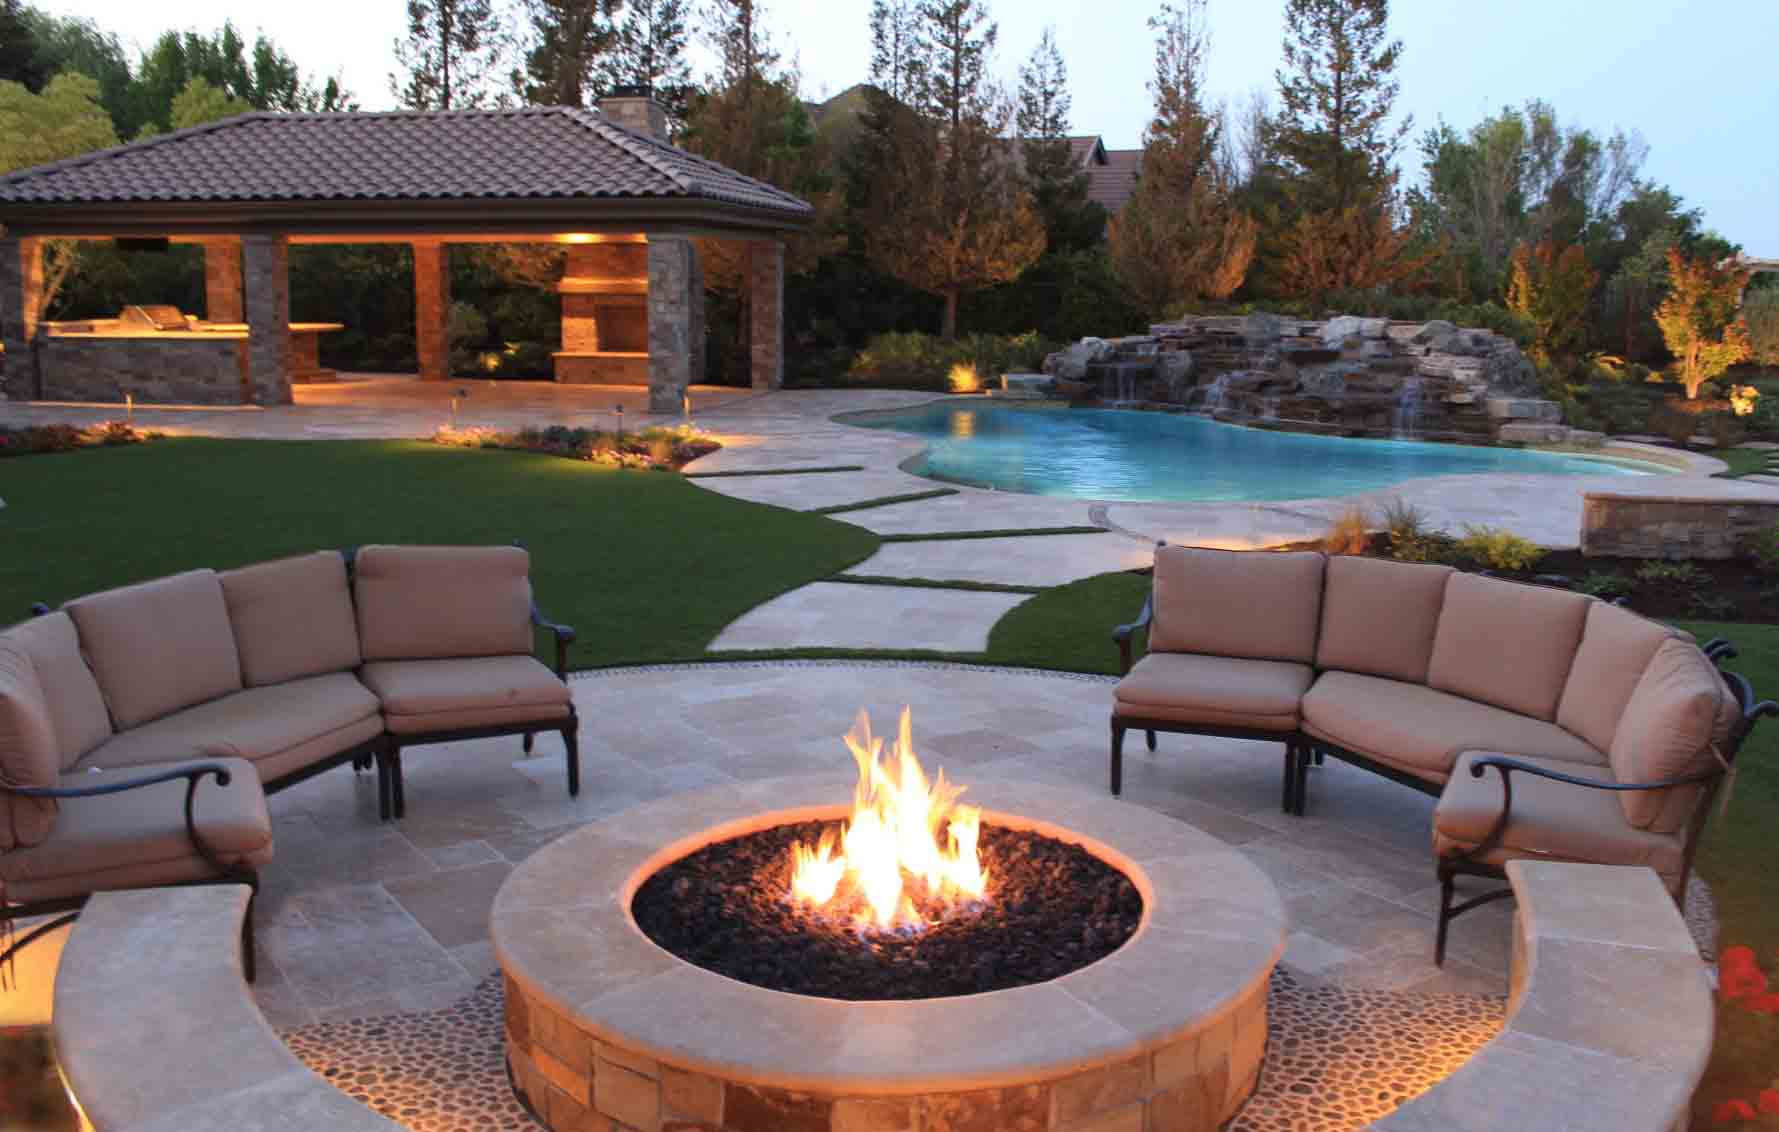 Photo gallery divided into the different parts of the landscape including Overall Design, Plant Design, Pool Design, Pool Remodels, Outdoor Fireplaces & Kitchens, Before & Afters, & Details.